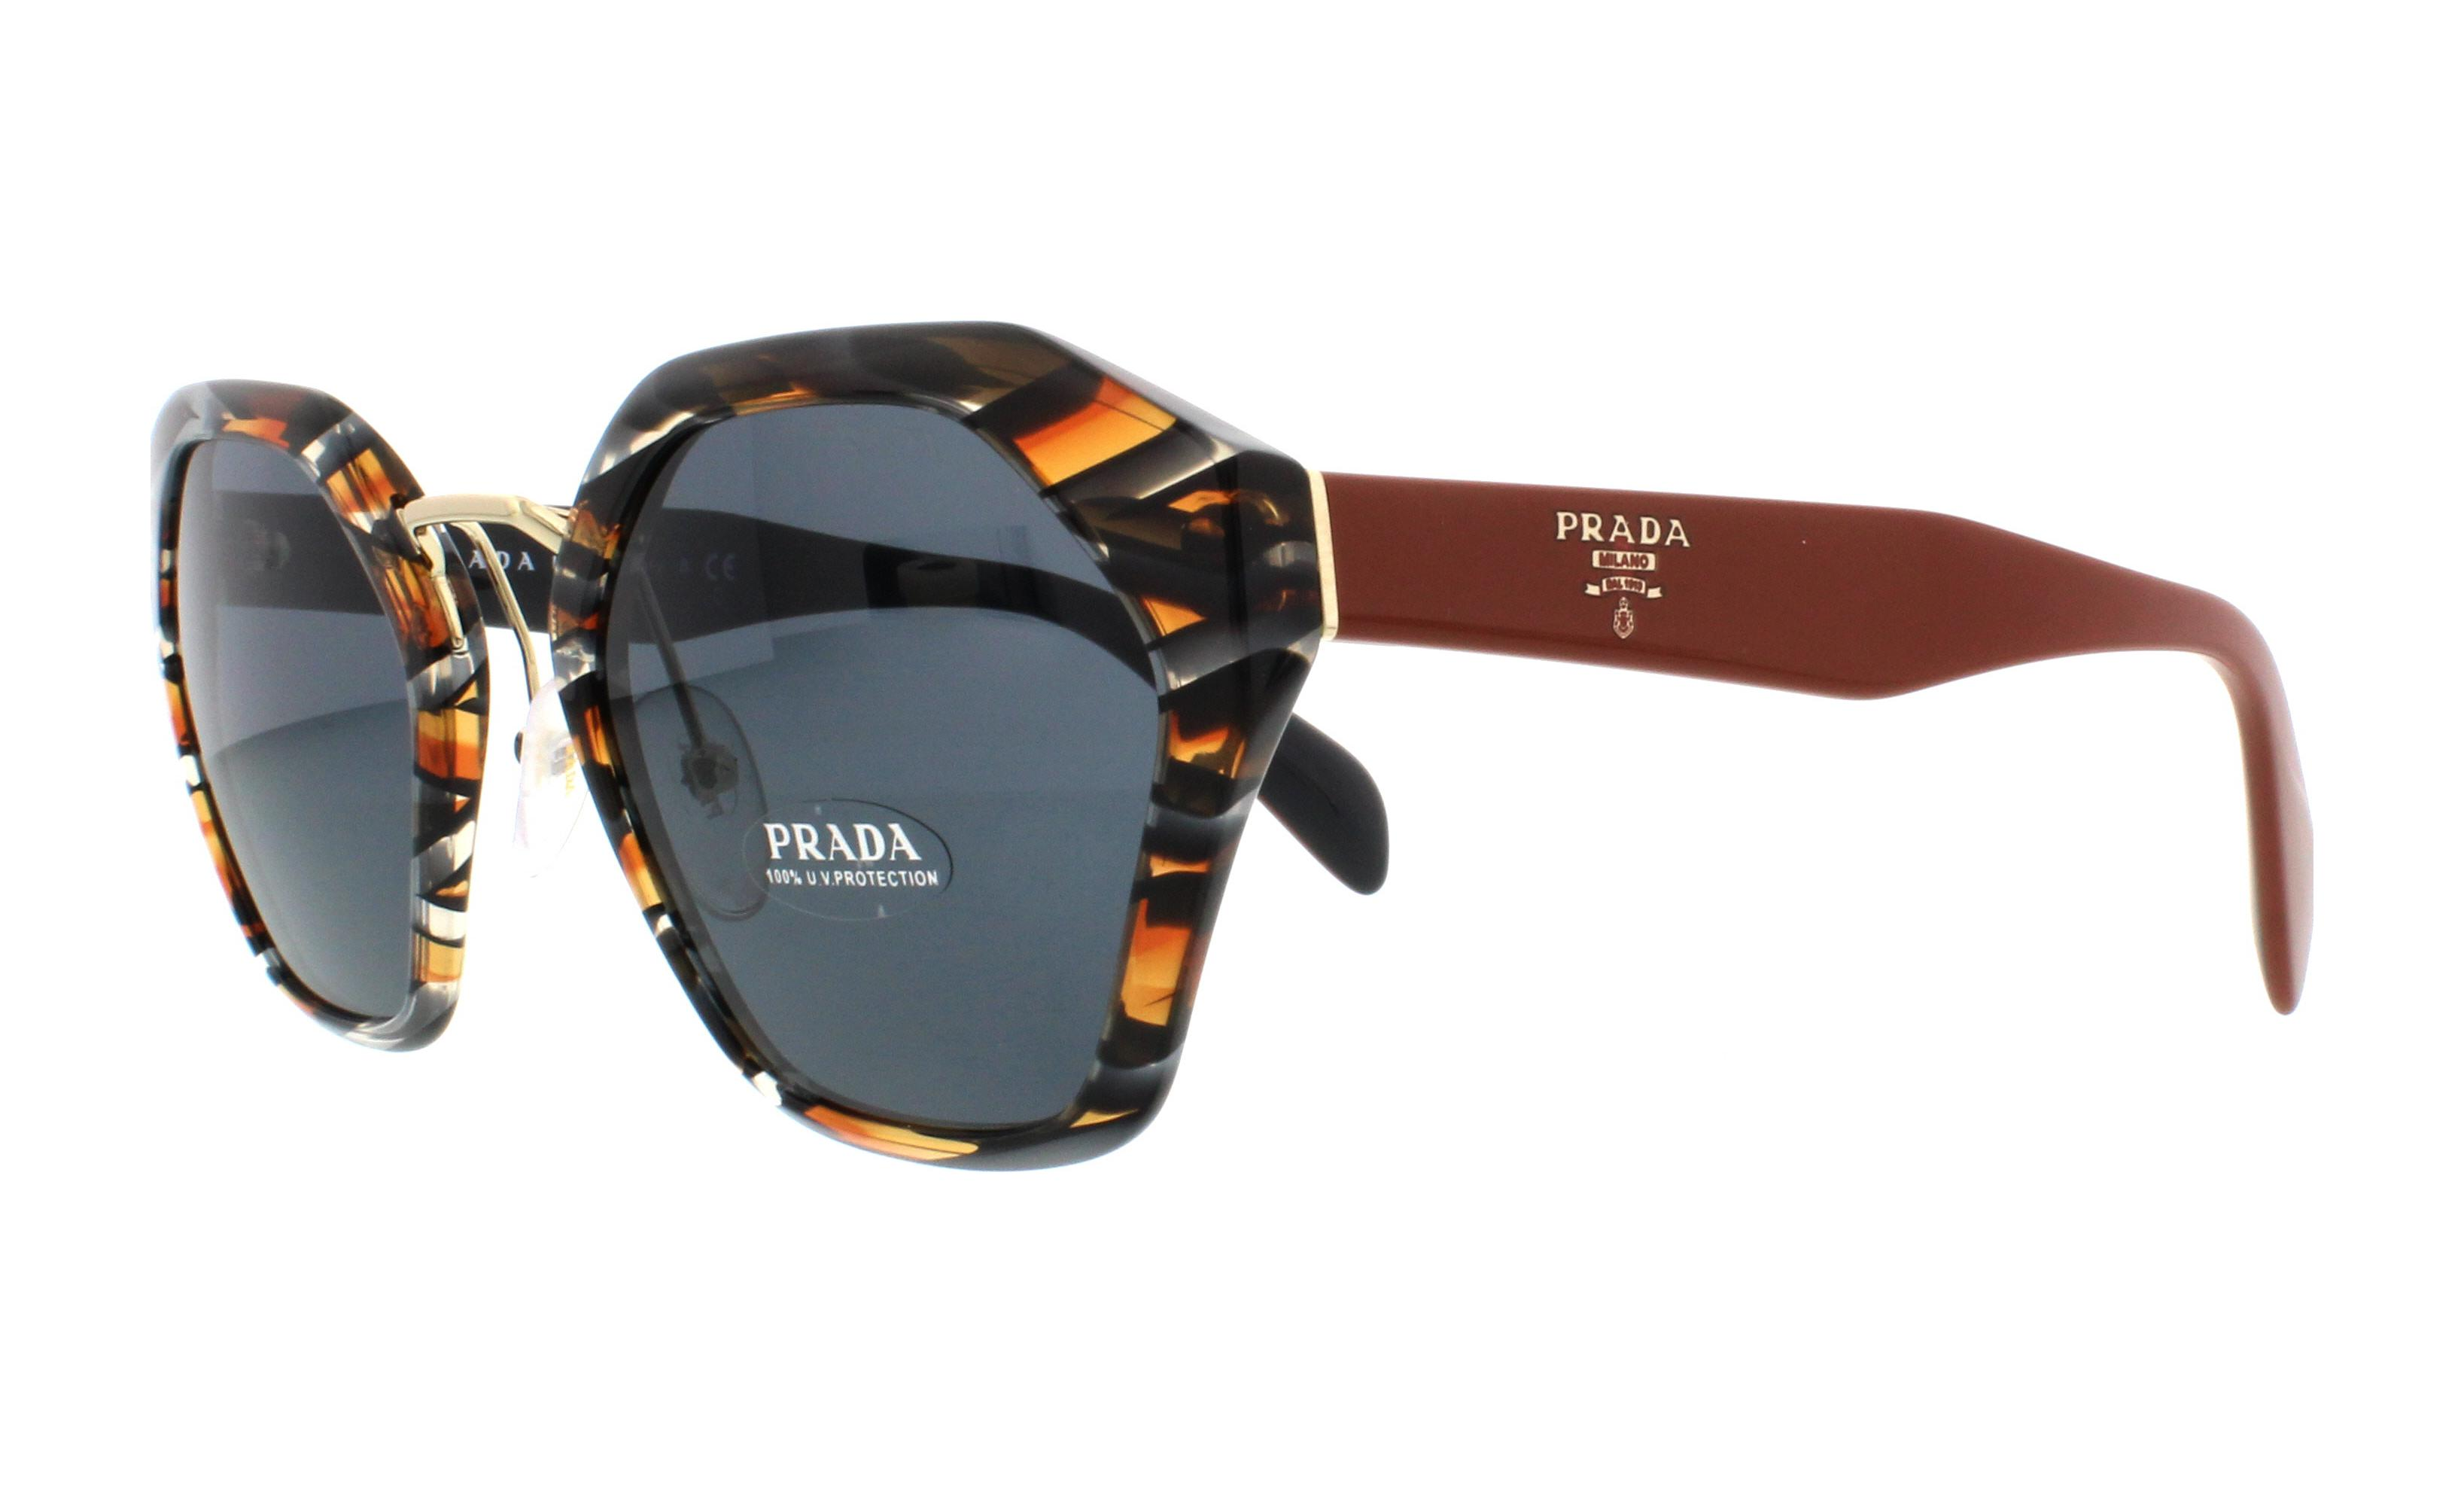 842ca6b86cc8c PRADA Sunglasses PR04TS VAN9K1 Sheaves Grey Orange 55MM ...